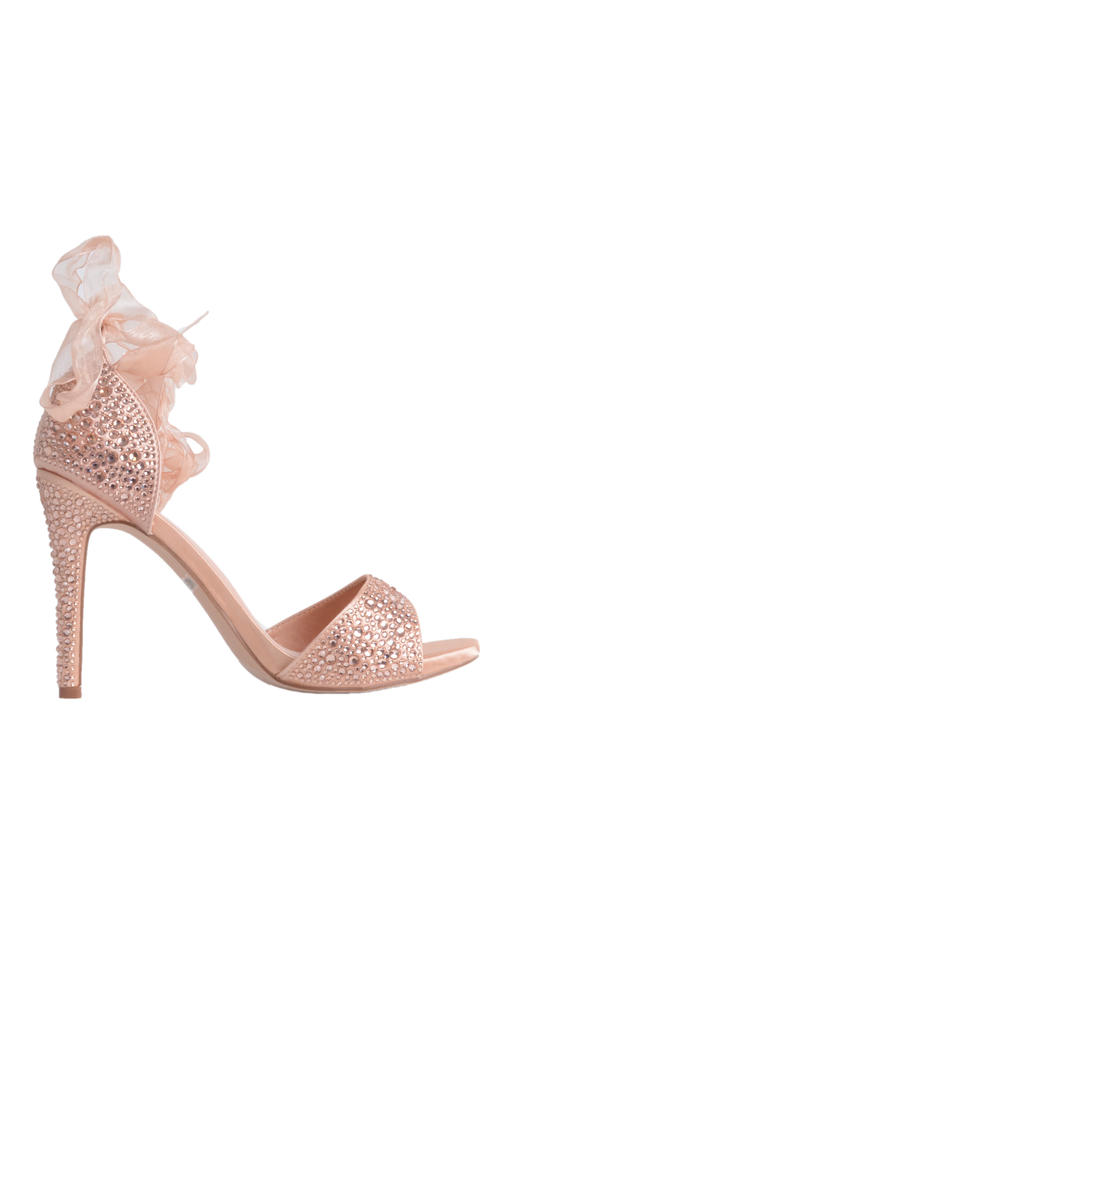 Embellished Open Toe Heel with Ribbon Tie